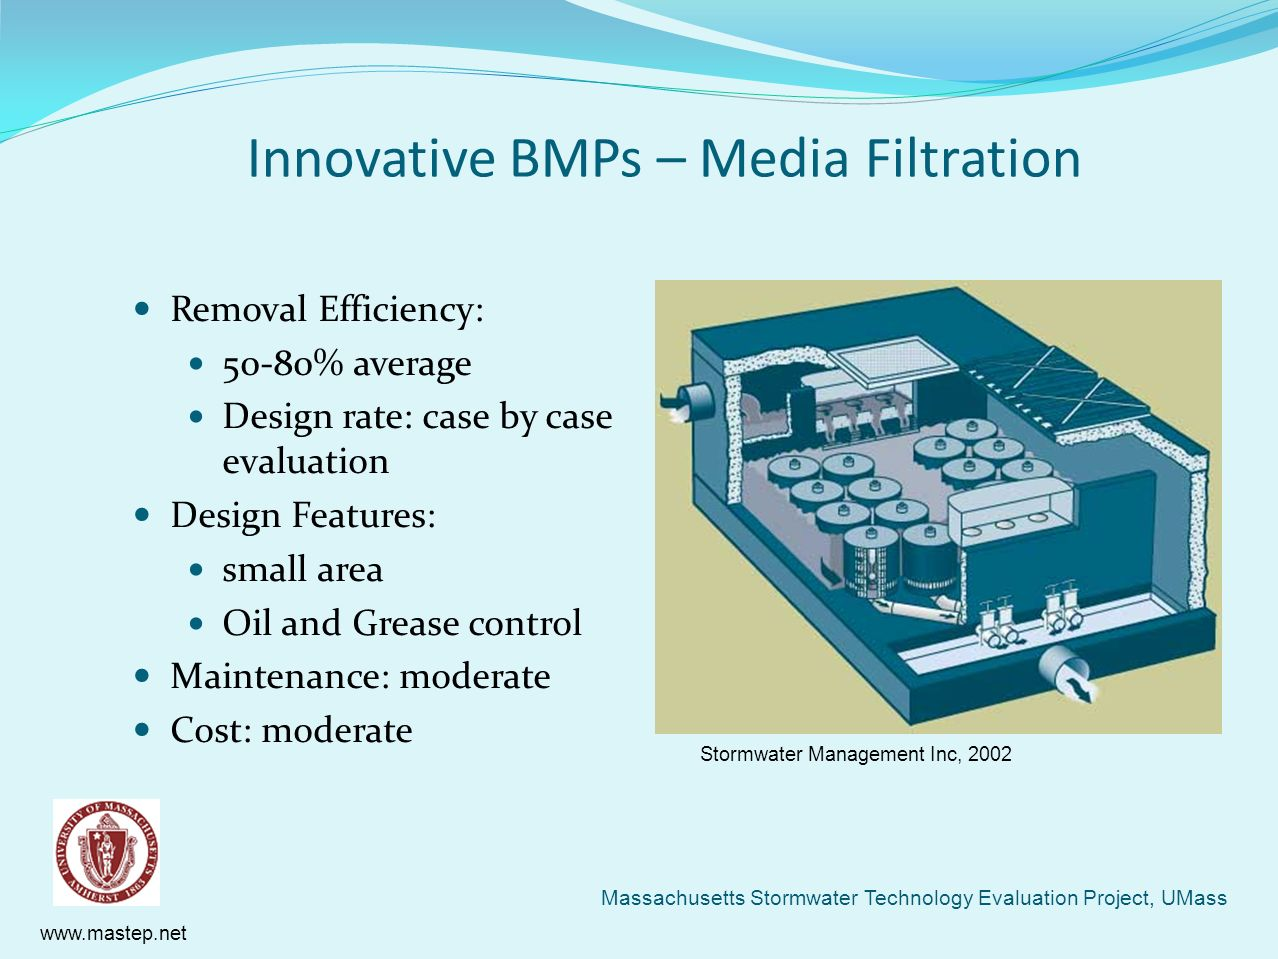 www.mastep.net Innovative BMPs – Media Filtration Removal Efficiency: 50-80% average Design rate: case by case evaluation Design Features: small area